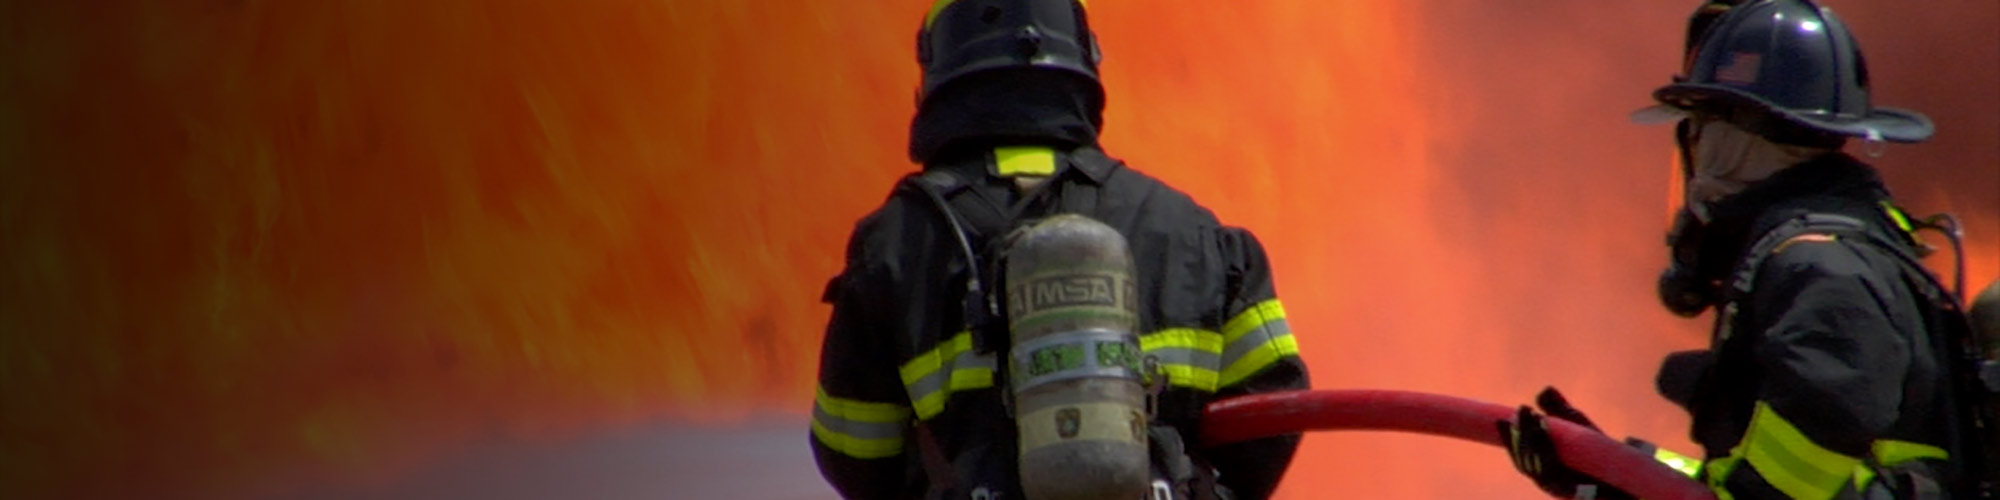 ARFF Training Requirements Completed Online